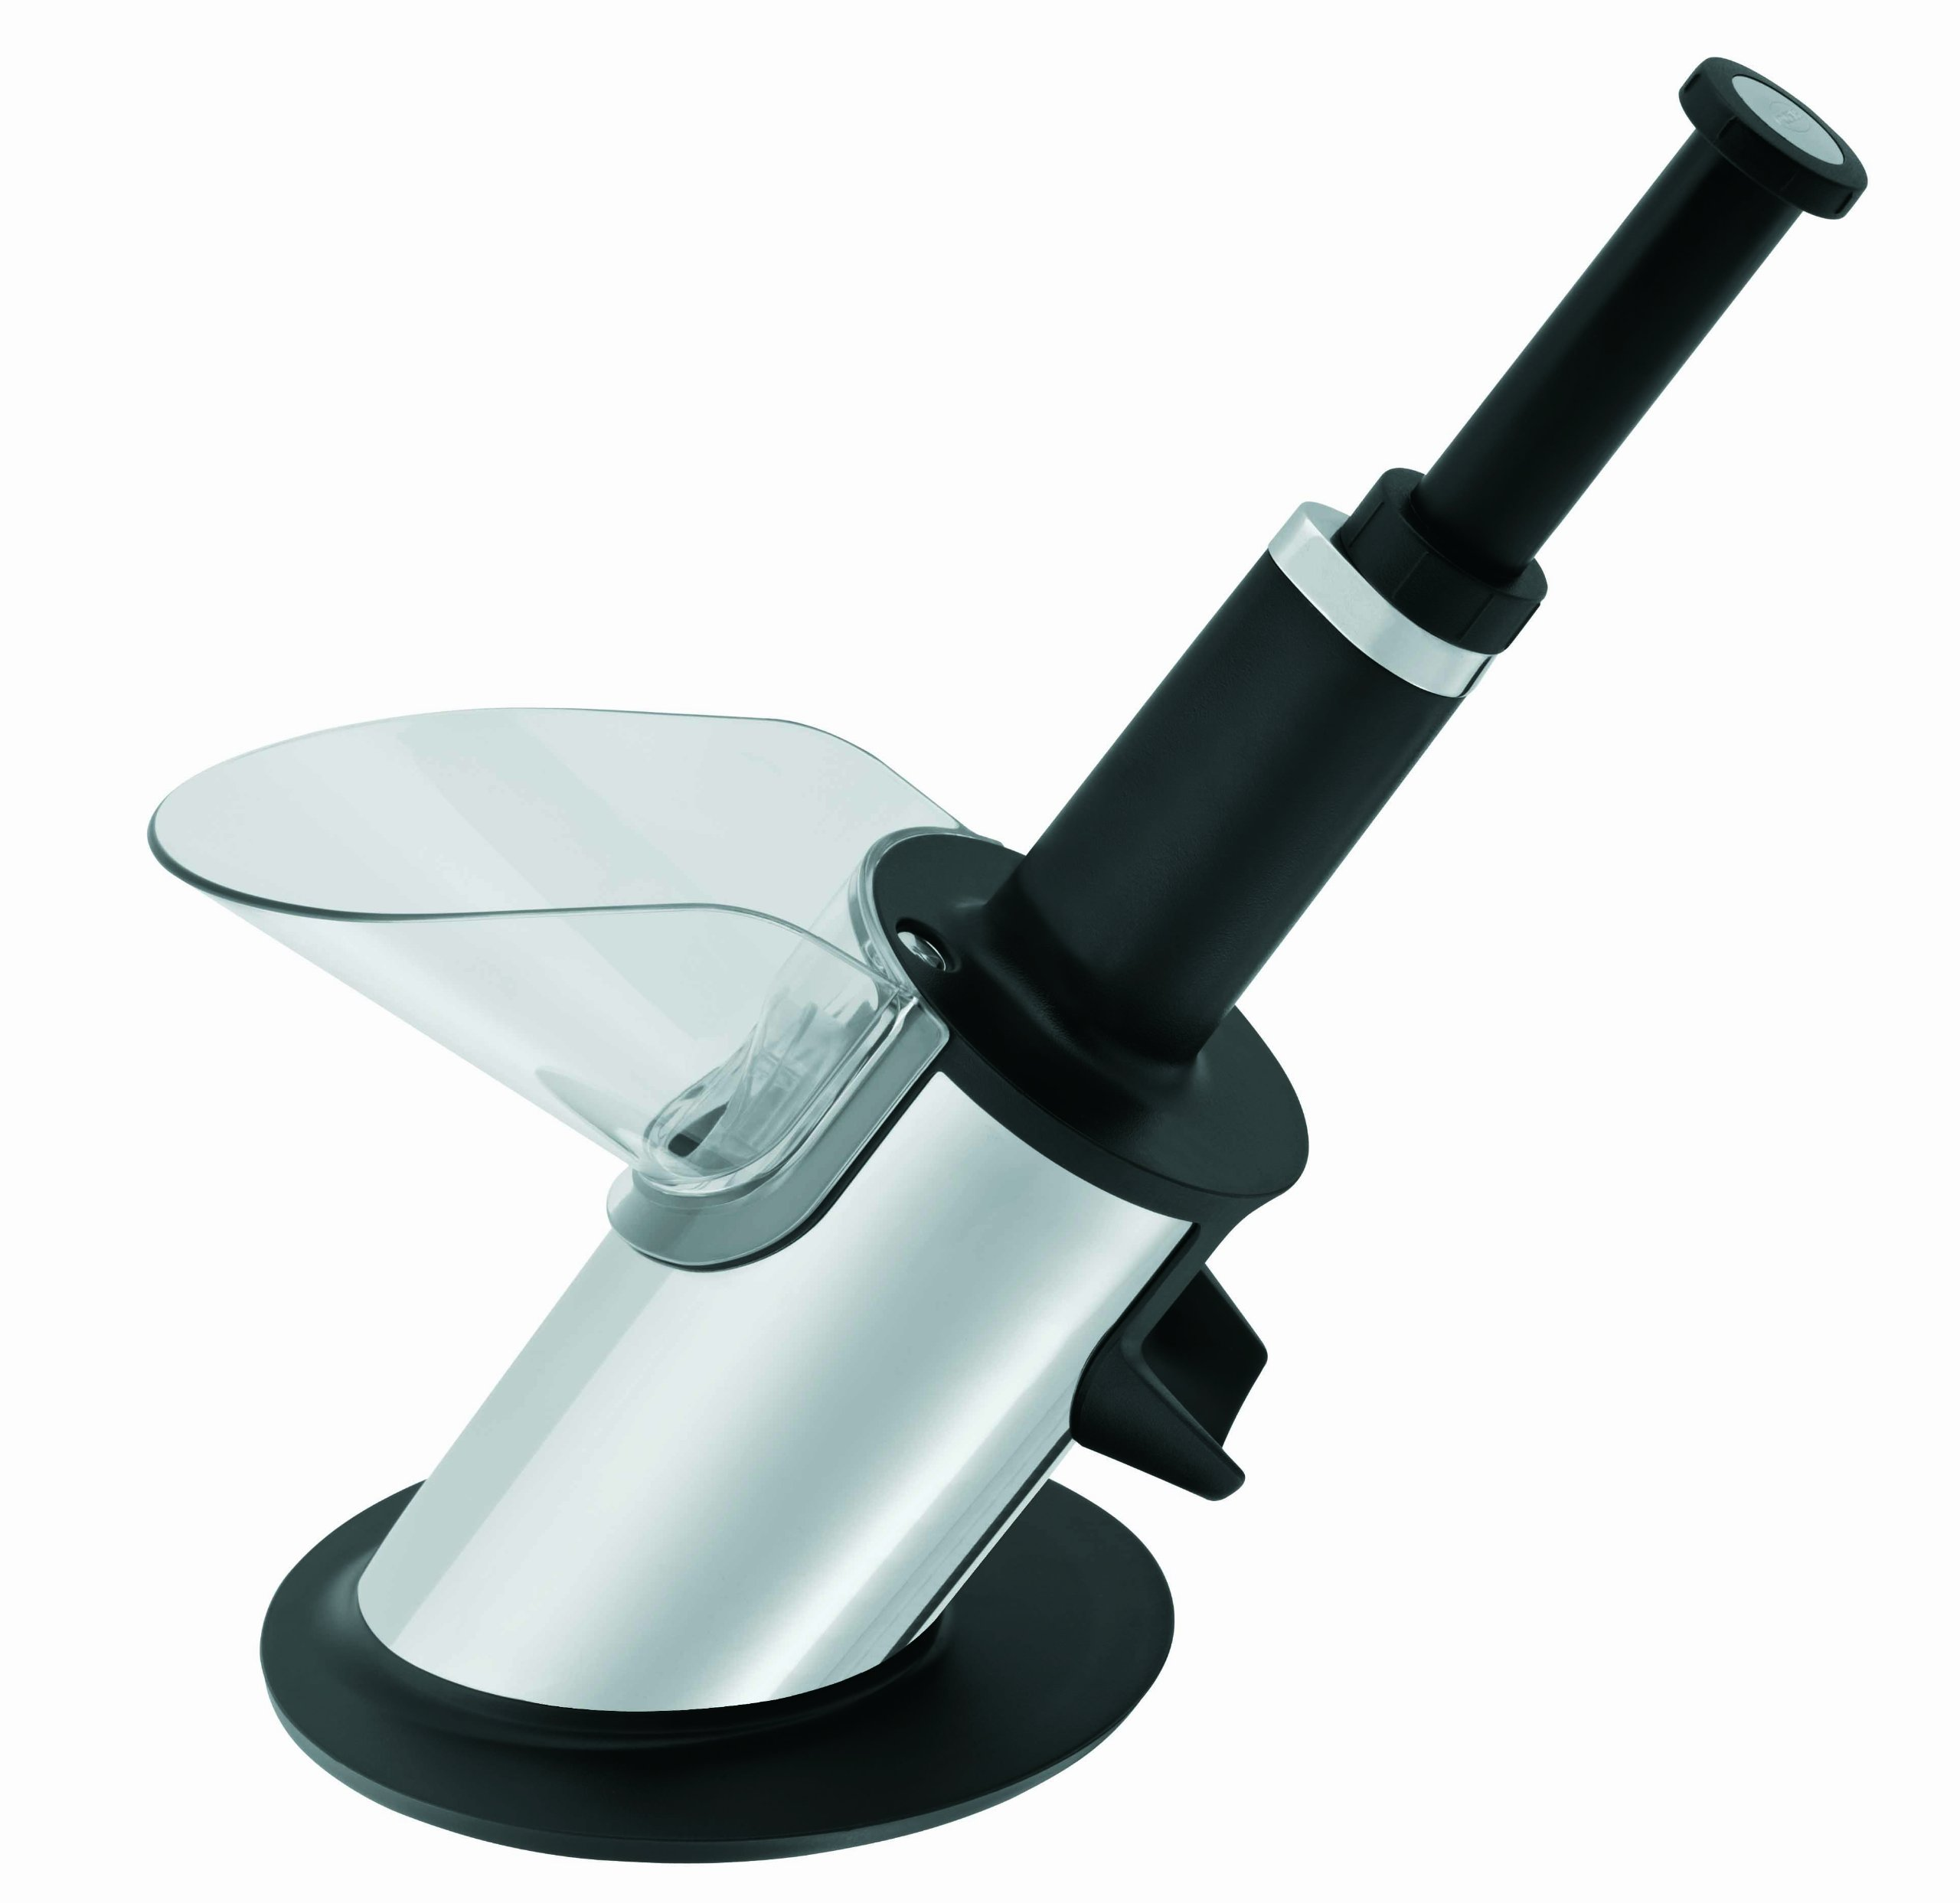 Rösle Stainless Steel Cherry Pitter, Silver by Rsle (Image #1)